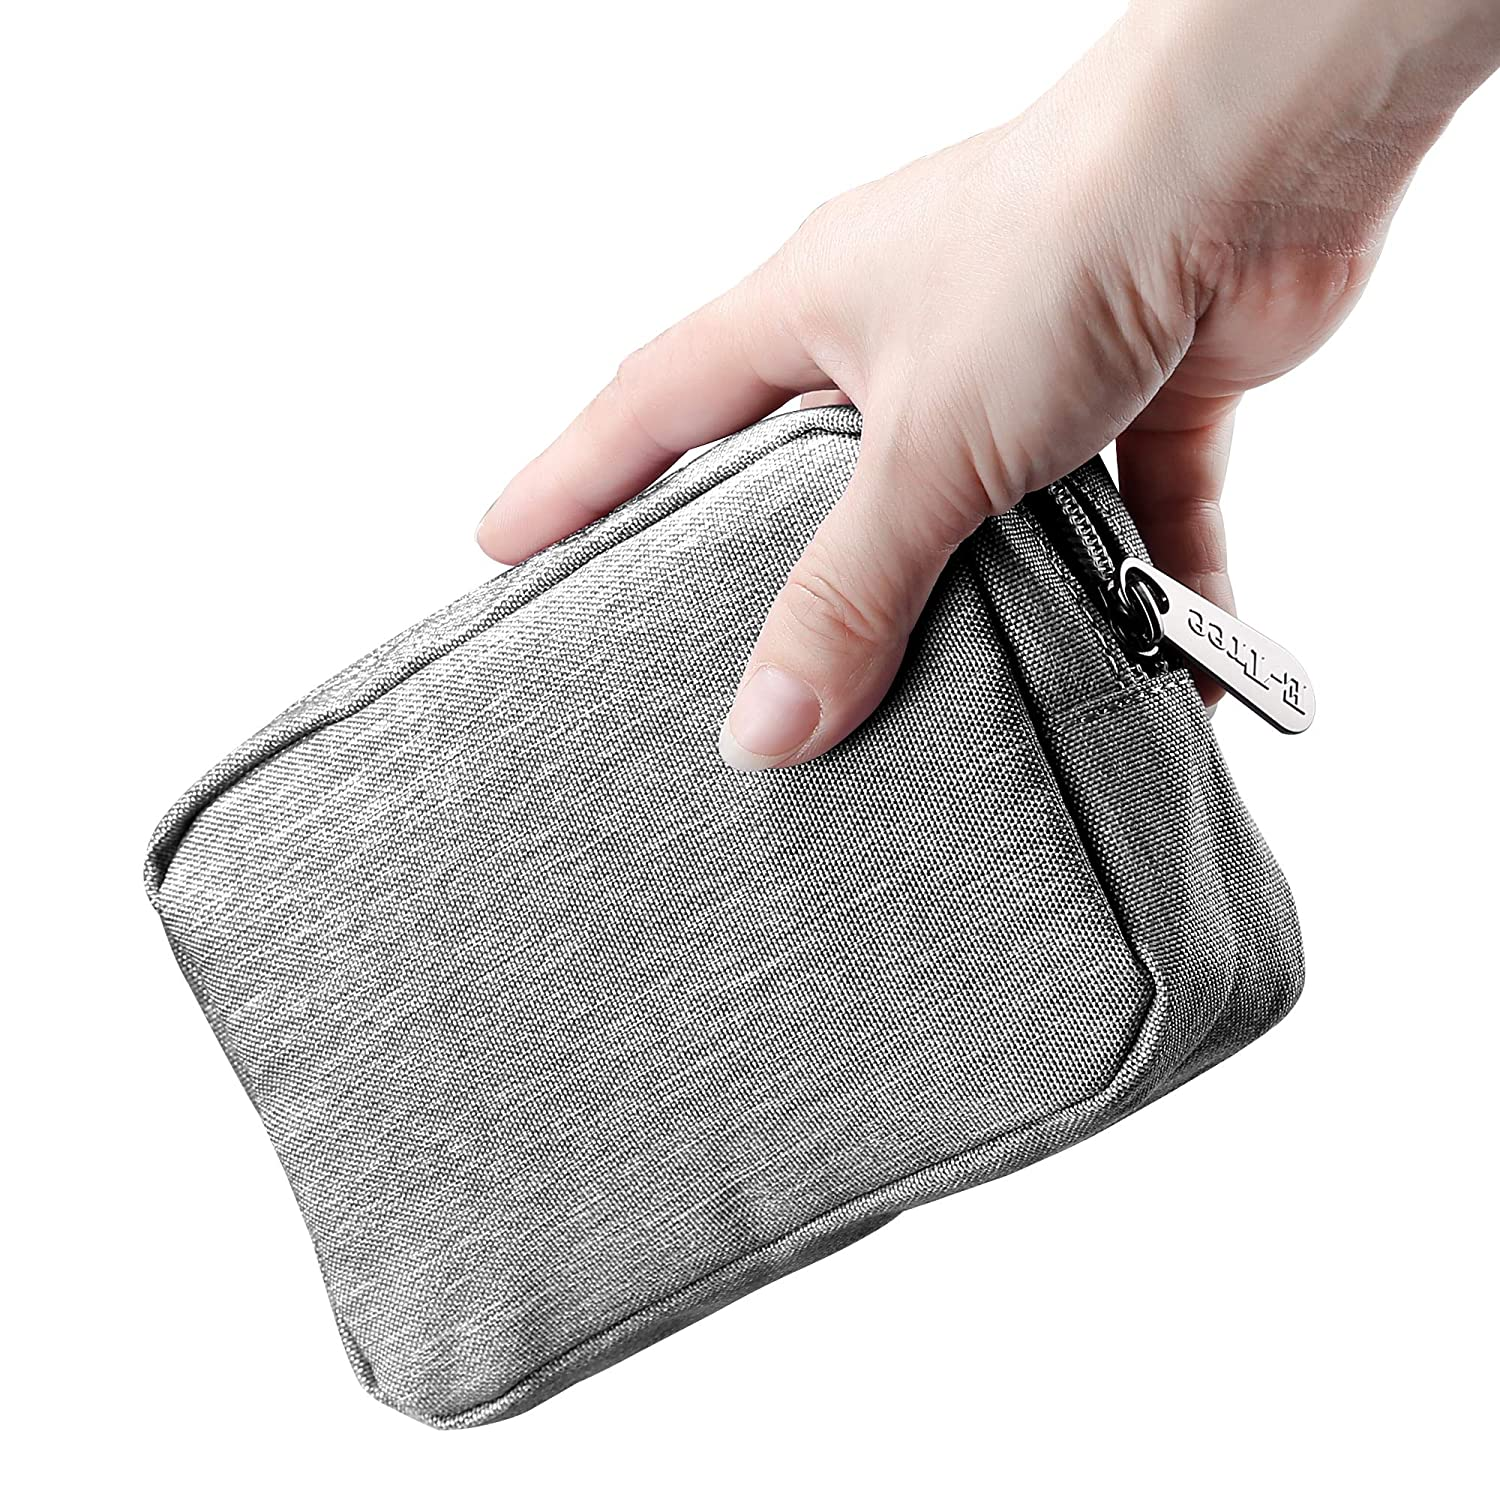 E-Tree 7 inch Convenient Little Pouch, Small Travel Gadget Bag, Mini Phone Accessories Storage Hard Drive Carry Case, Handbag, Canvas Coin Purse, Zippered Wallet, Makeup Carrying kit